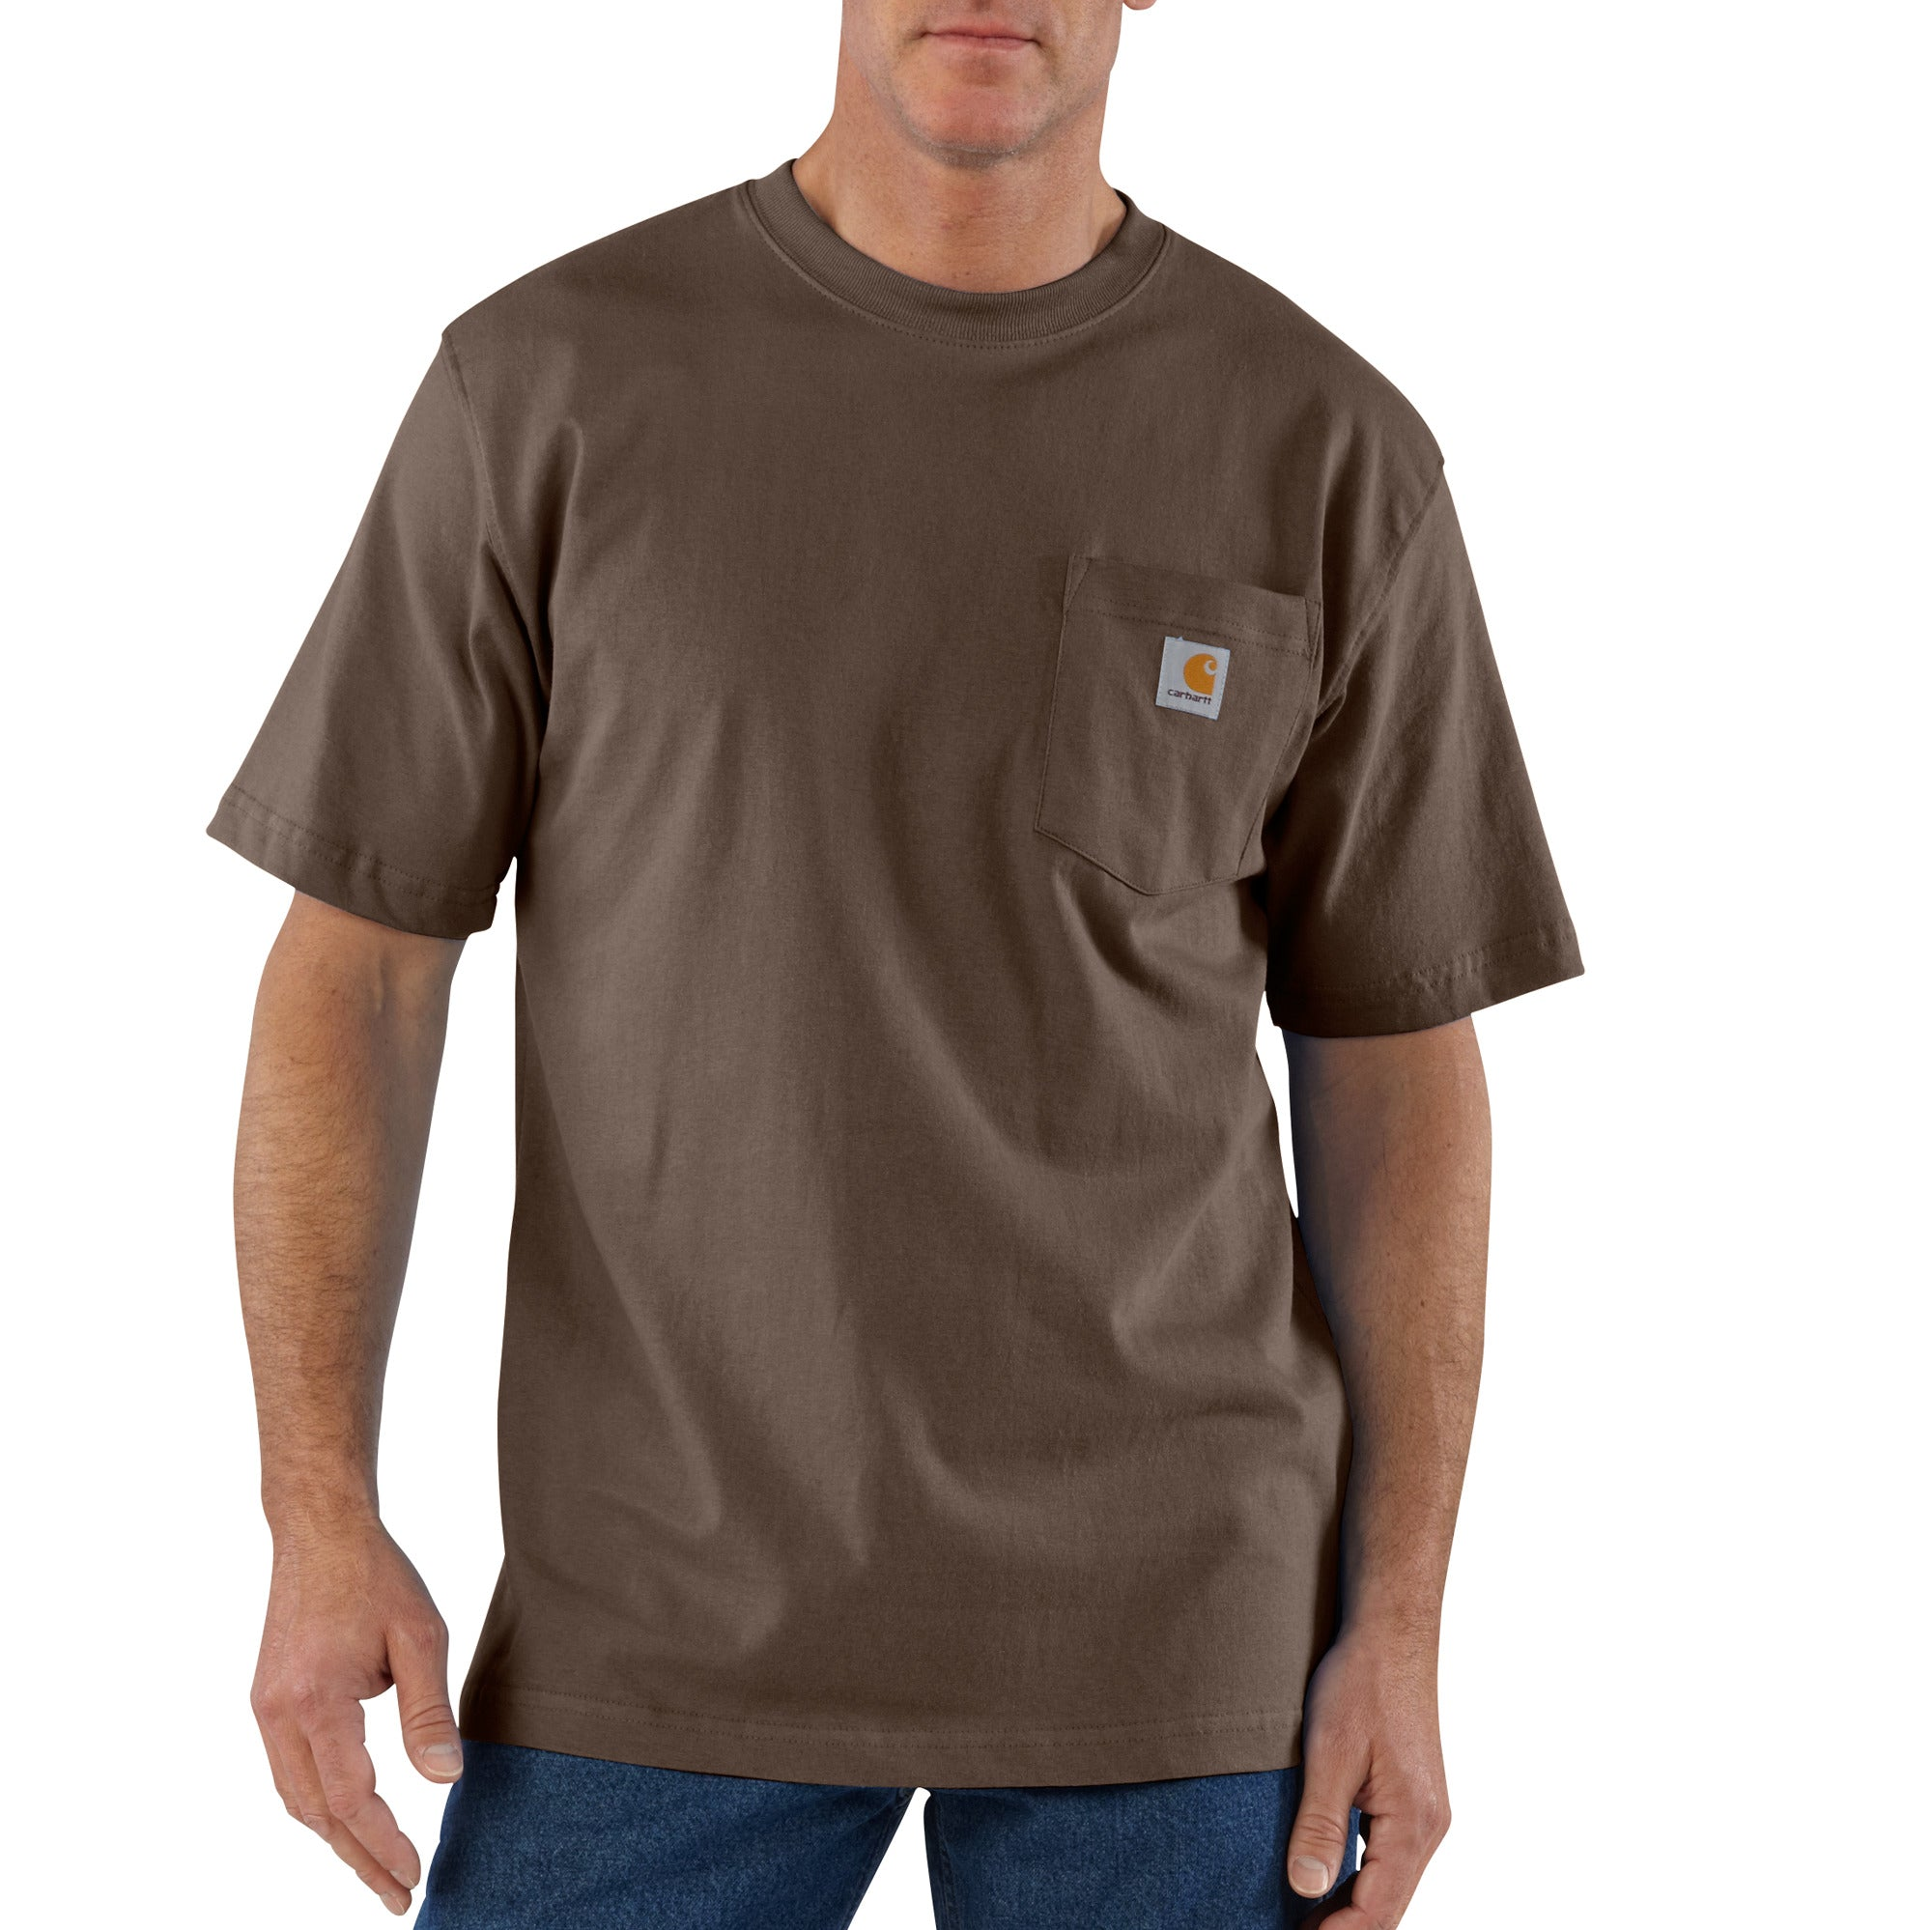 'Carhartt' Men's Workwear Heavyweight Pocket T-Shirt - Dark Brown